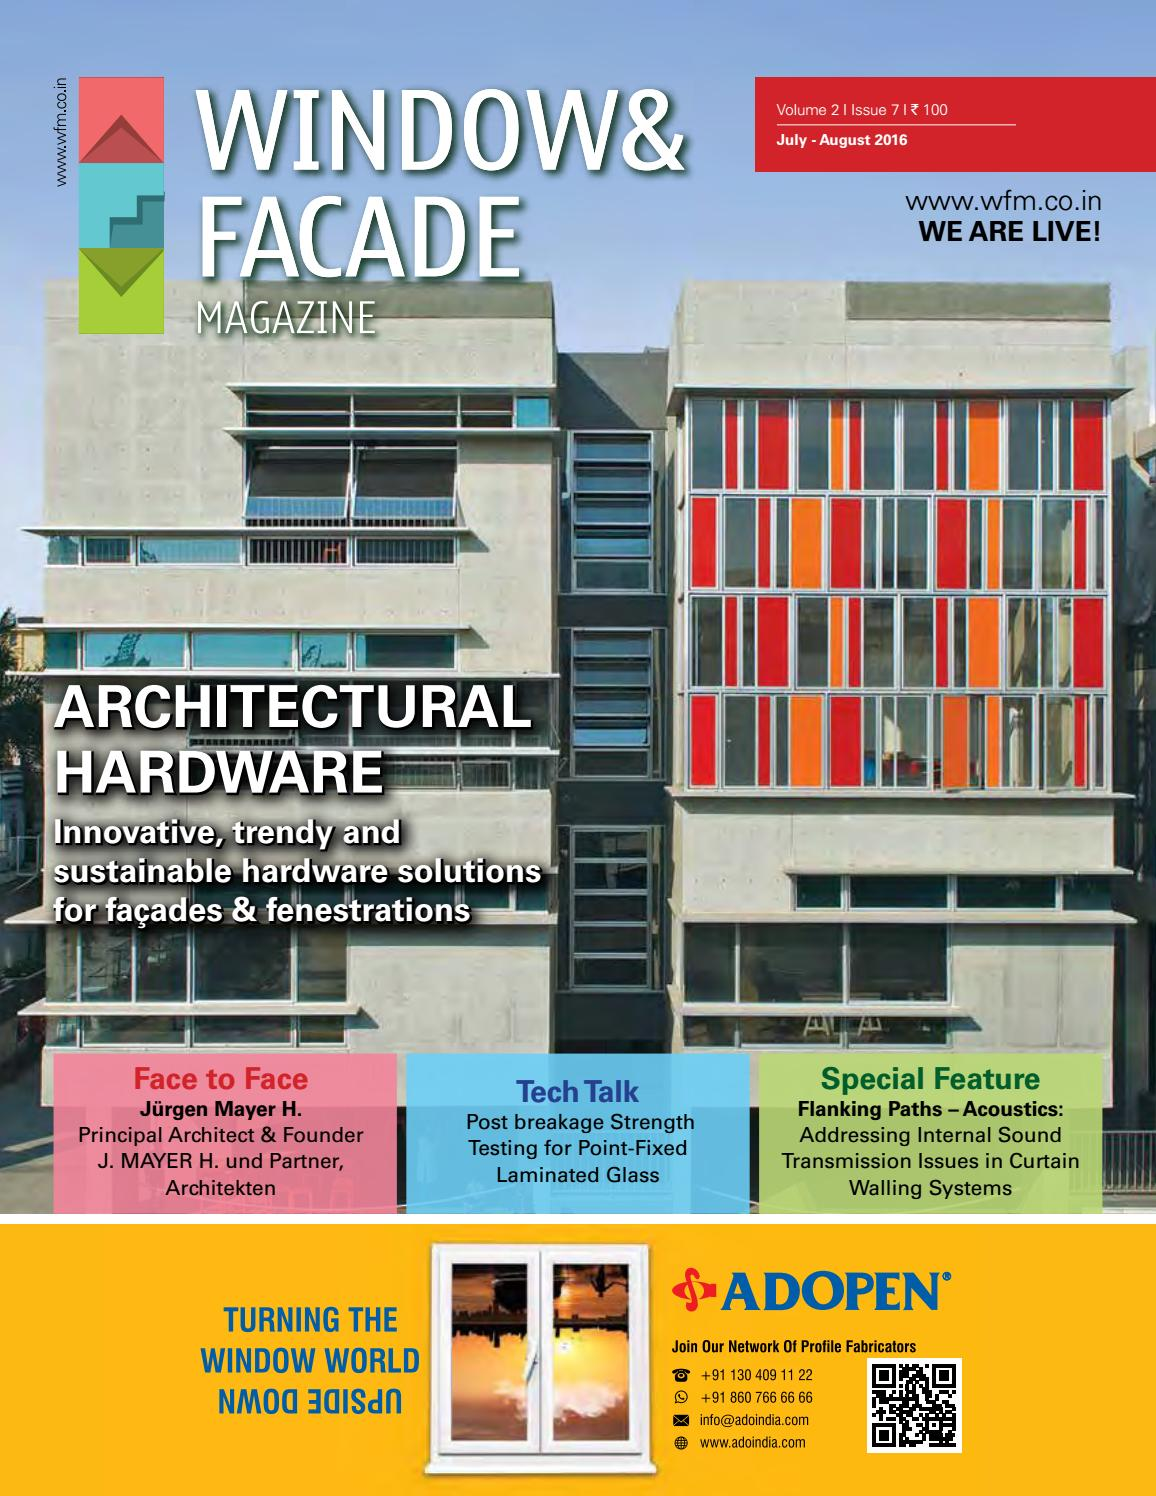 Window & Facade Magazine - July/August 2016 Issue by F & F